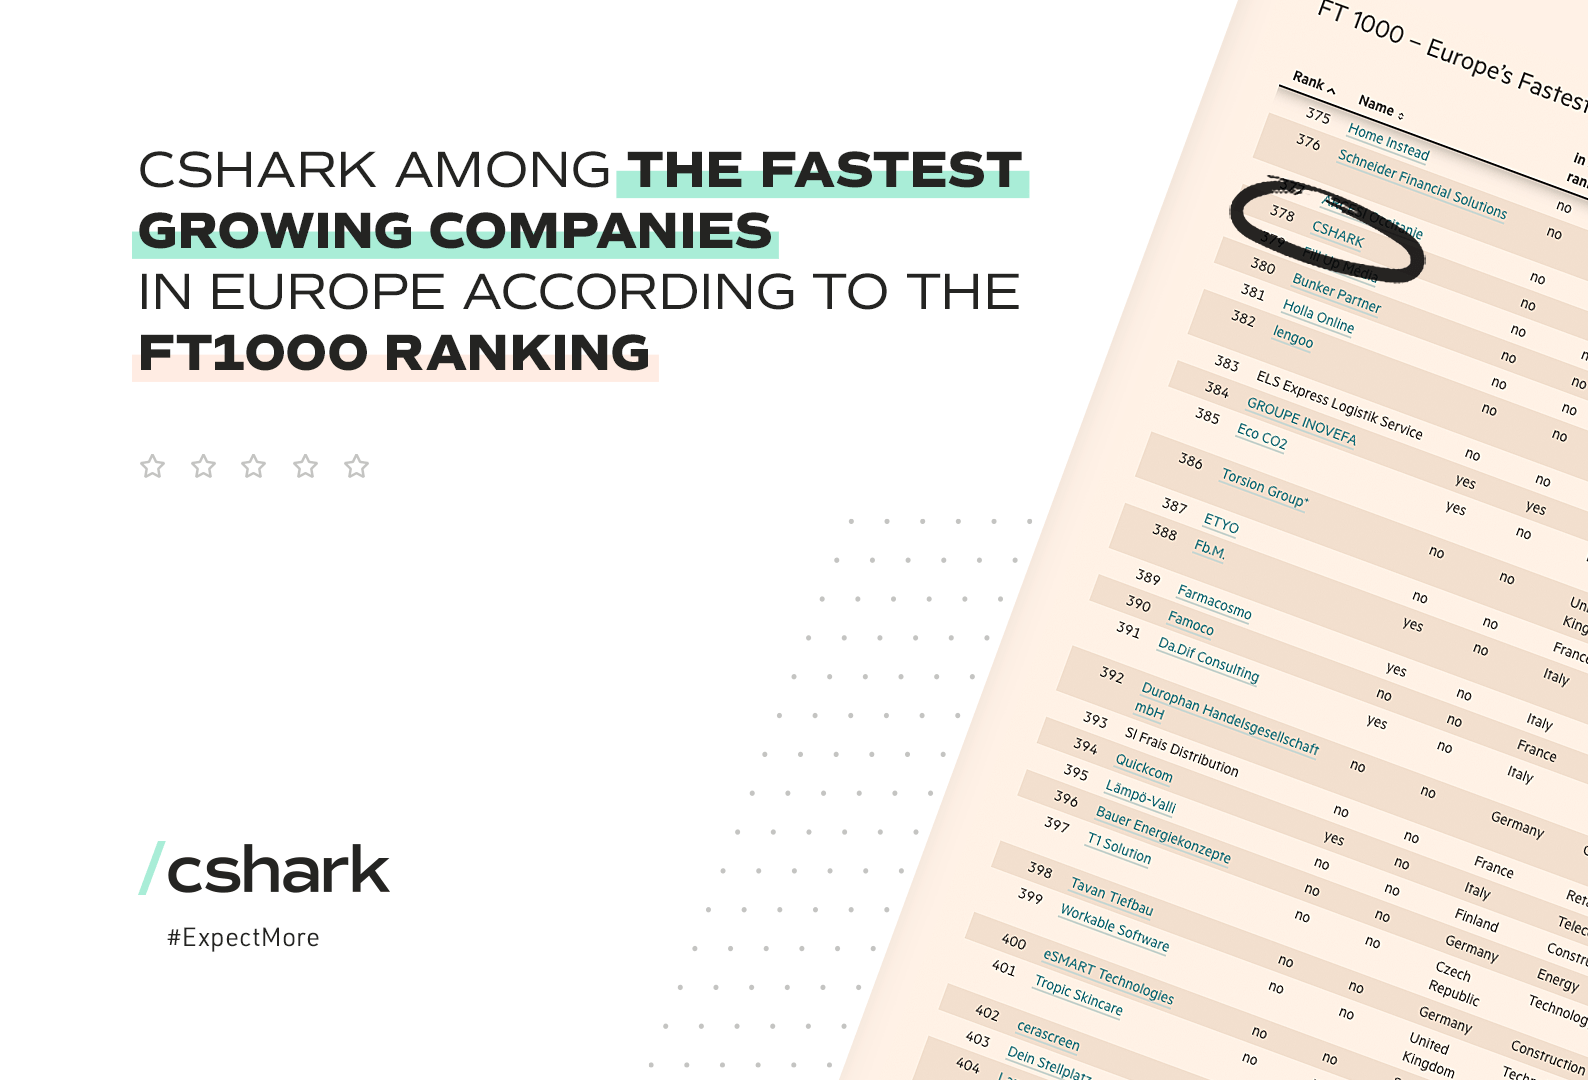 CSHARK News - FT1000 report